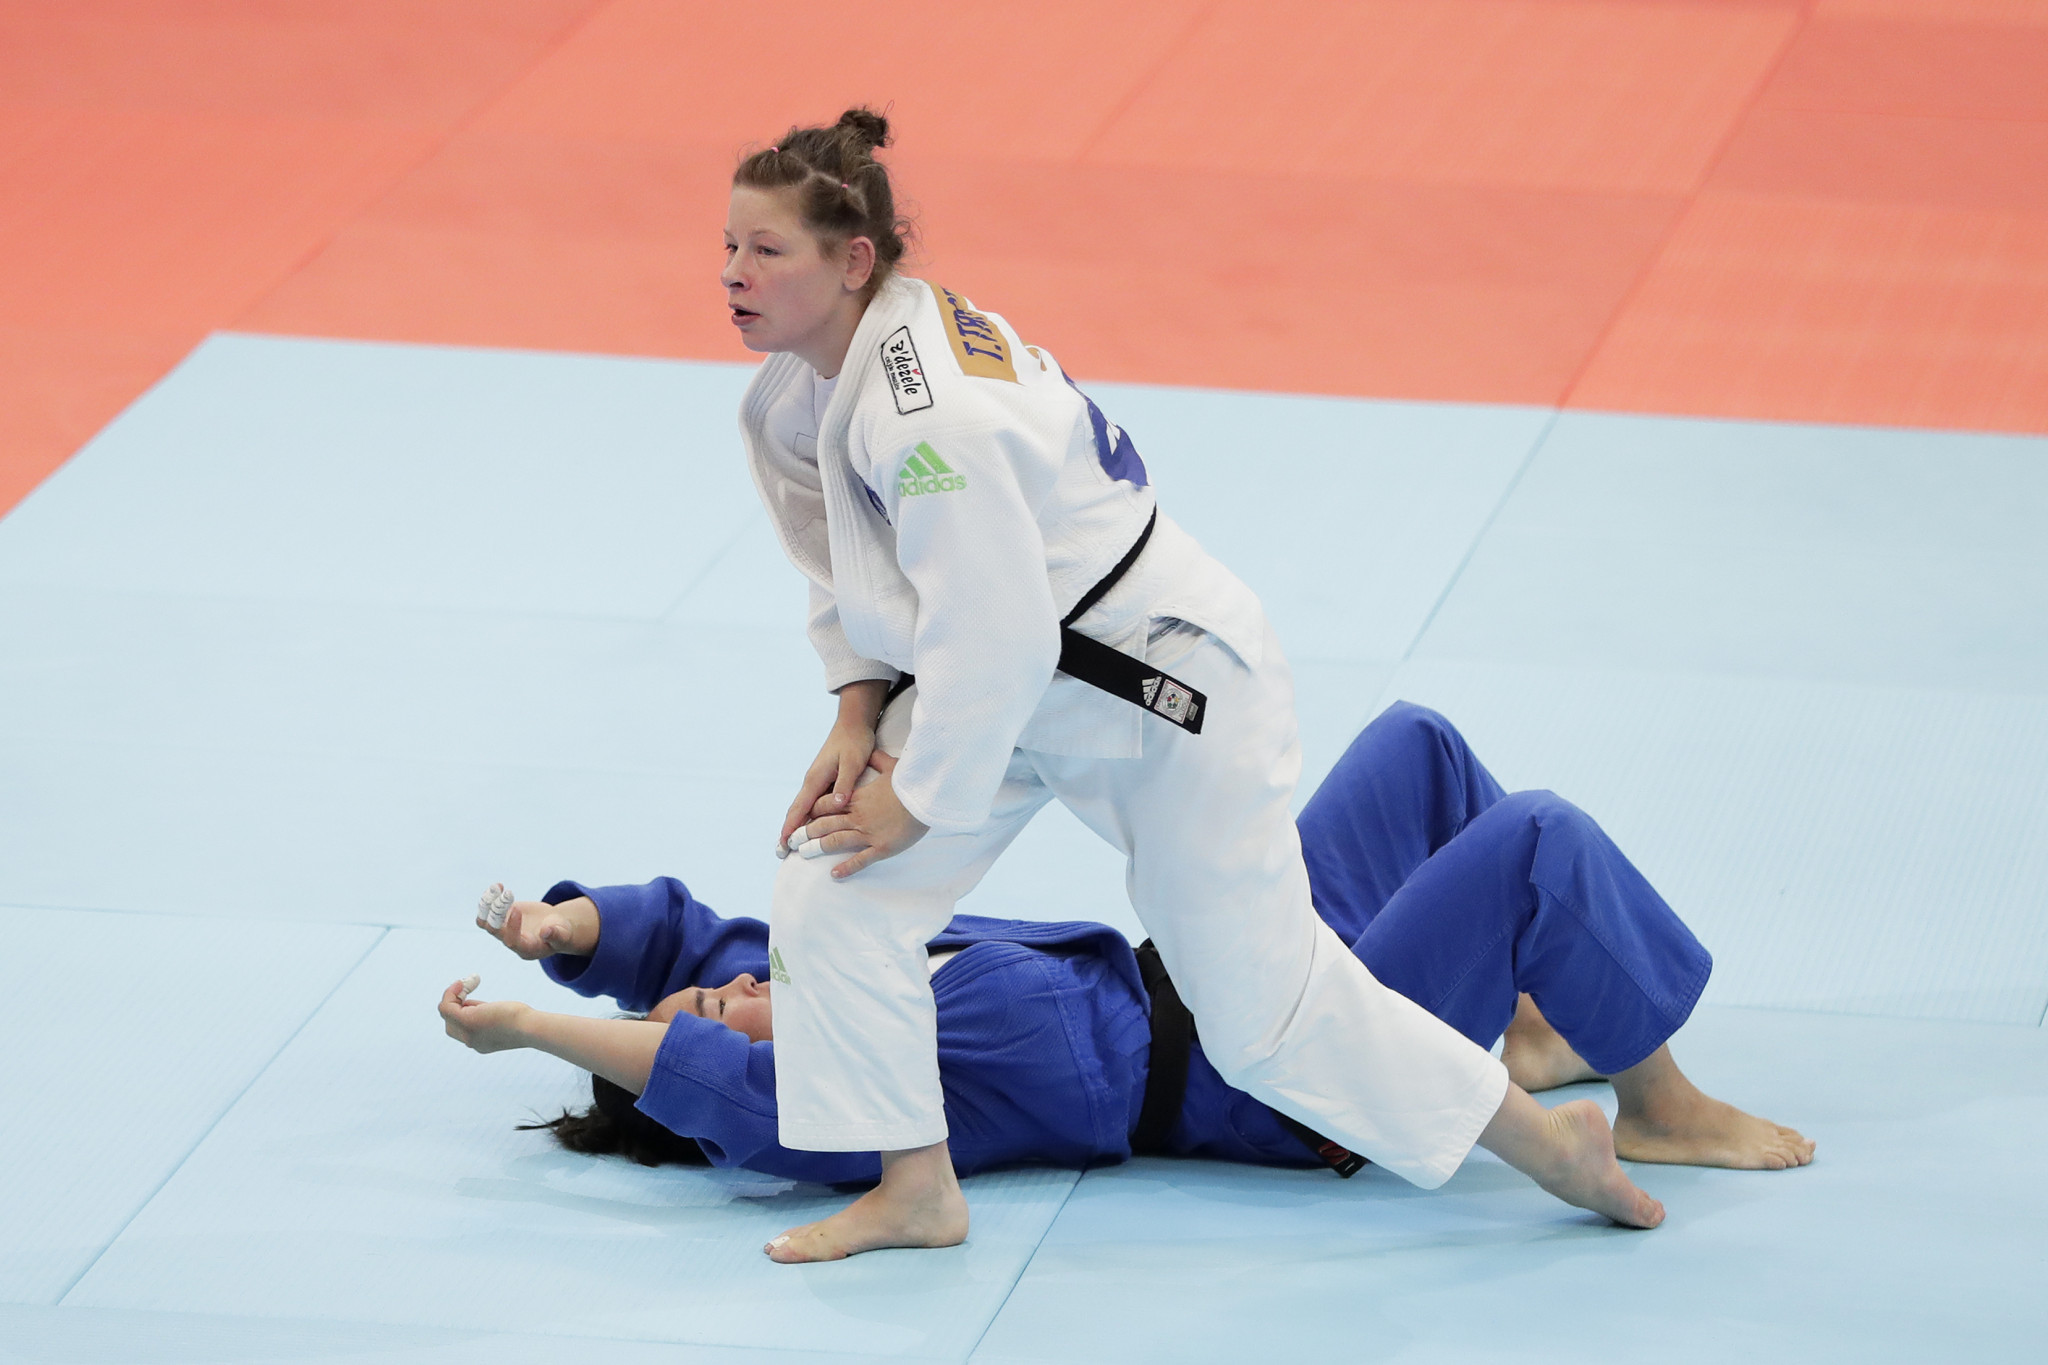 Olympic champion Tina Trstenjak, in white, was disqualified for attempting an illegal move in her semi-final ©Getty Images